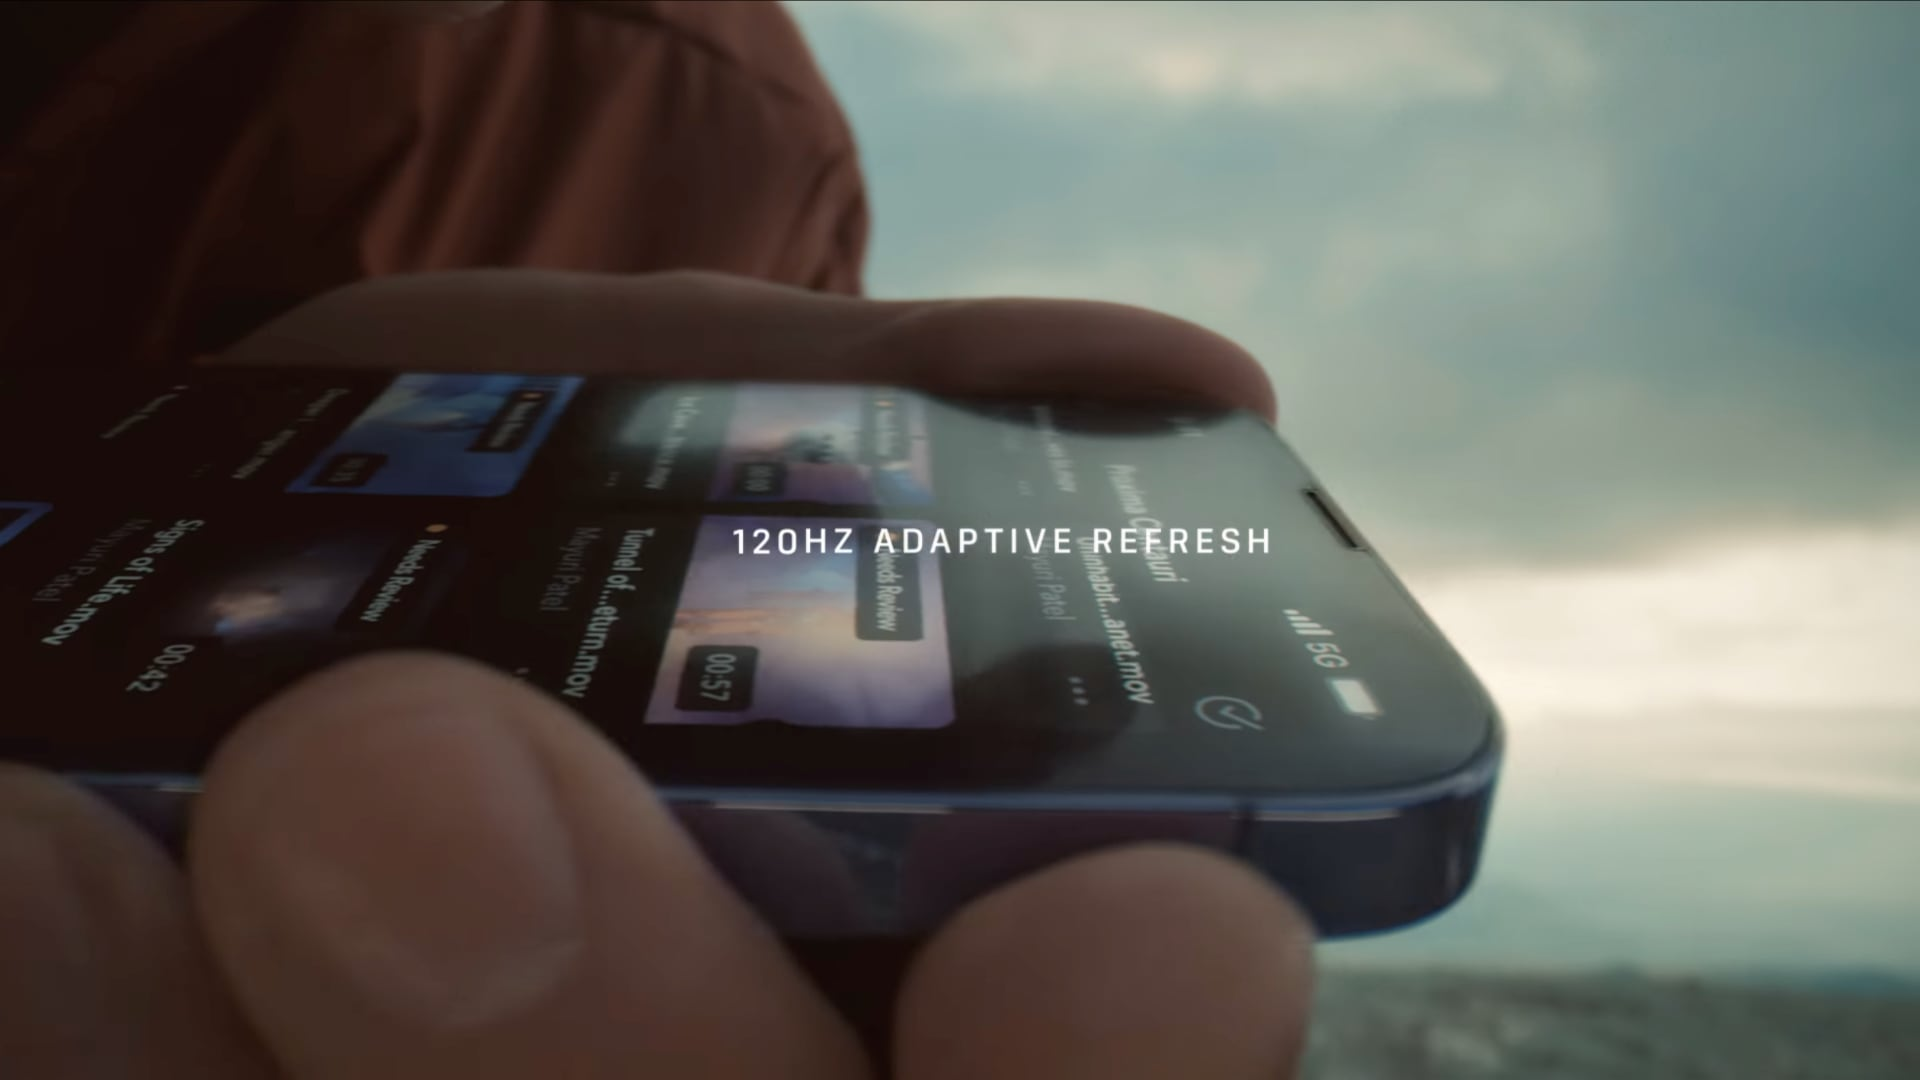 """Image from Apple's YouTube video showing ProMotion technology in action, with a hand holding an iPhone 13 Pro and scrolling through a list and the title """"120Hz adaptive refresh rate"""" overlaid on top"""